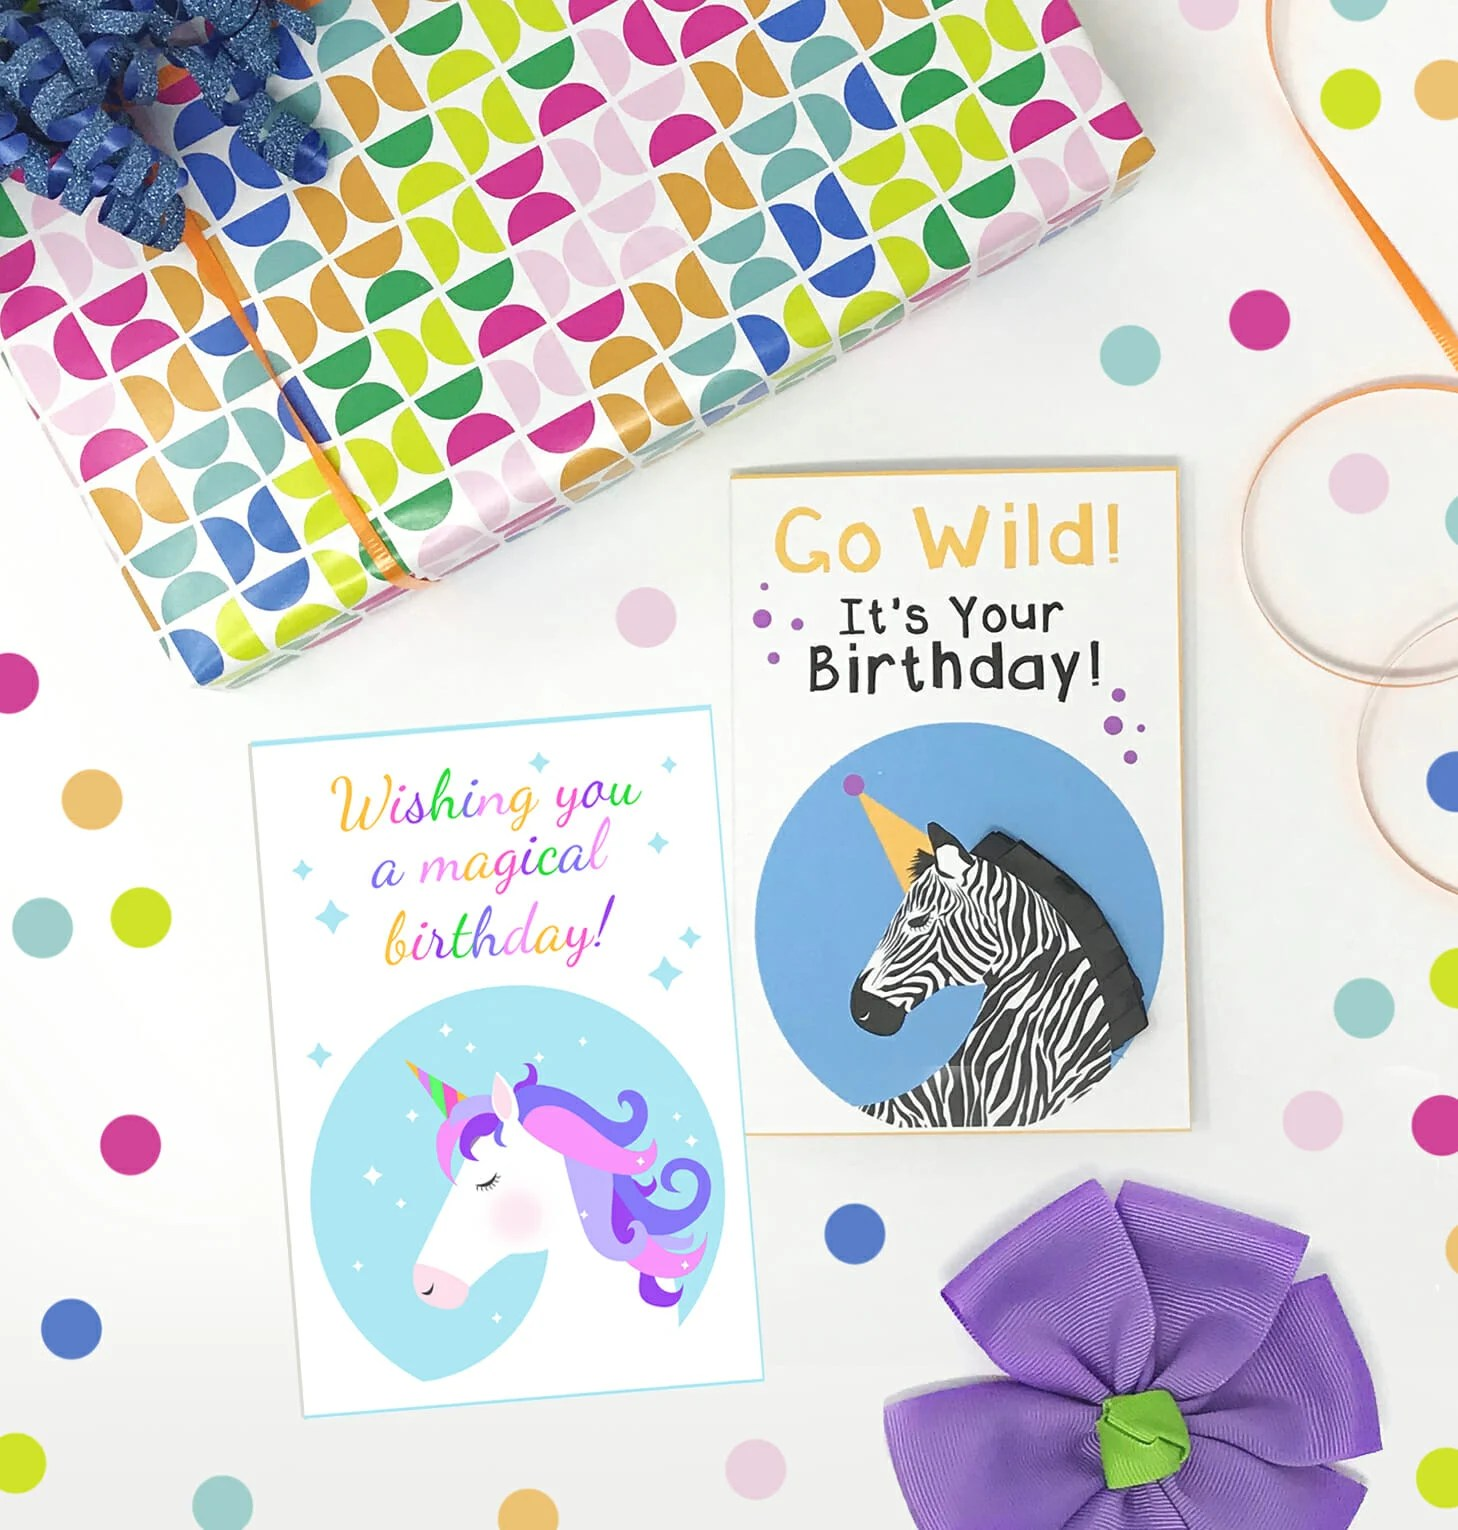 graphic relating to Unicorn Birthday Card Printable identified as Cost-free Printable Unicorn and Zebra Birthday Playing cards - Composing